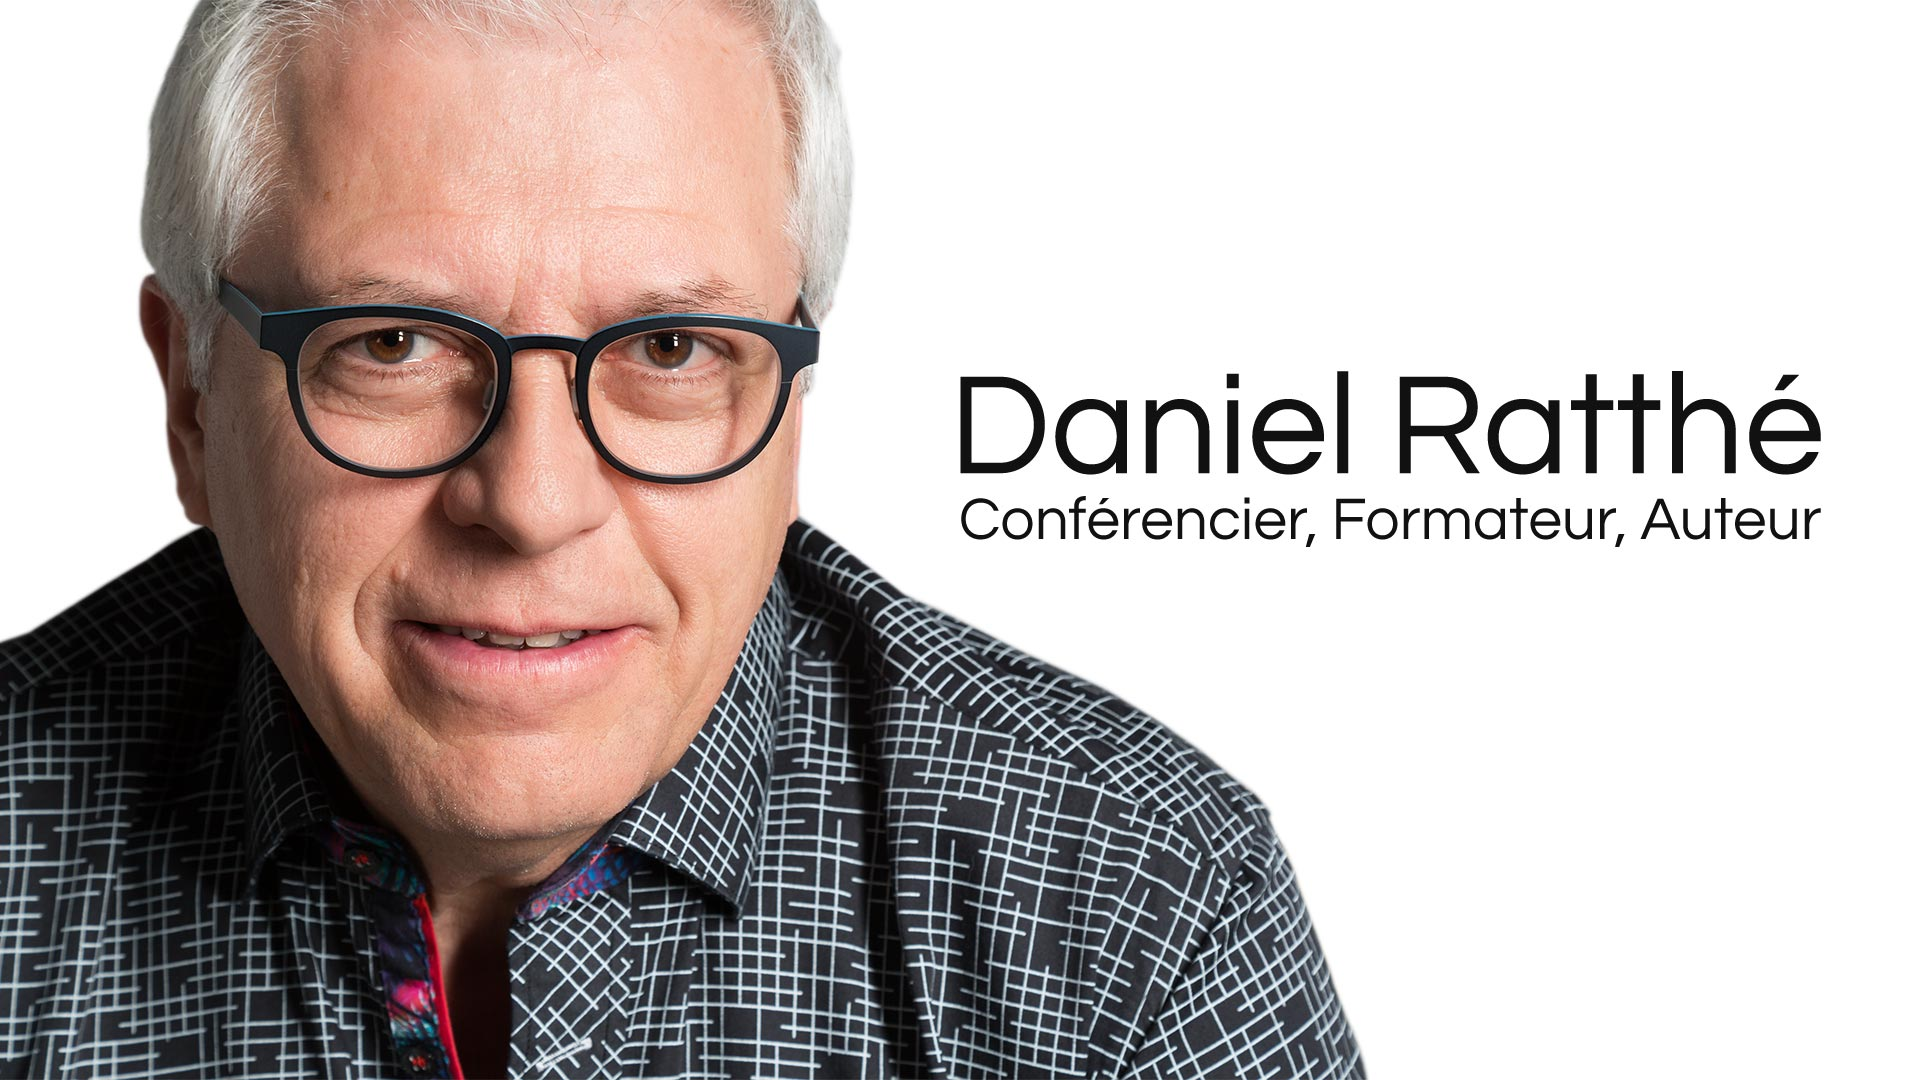 daniel-ratthe-conferencier-formateur-influenceur-header-1920×1080-05